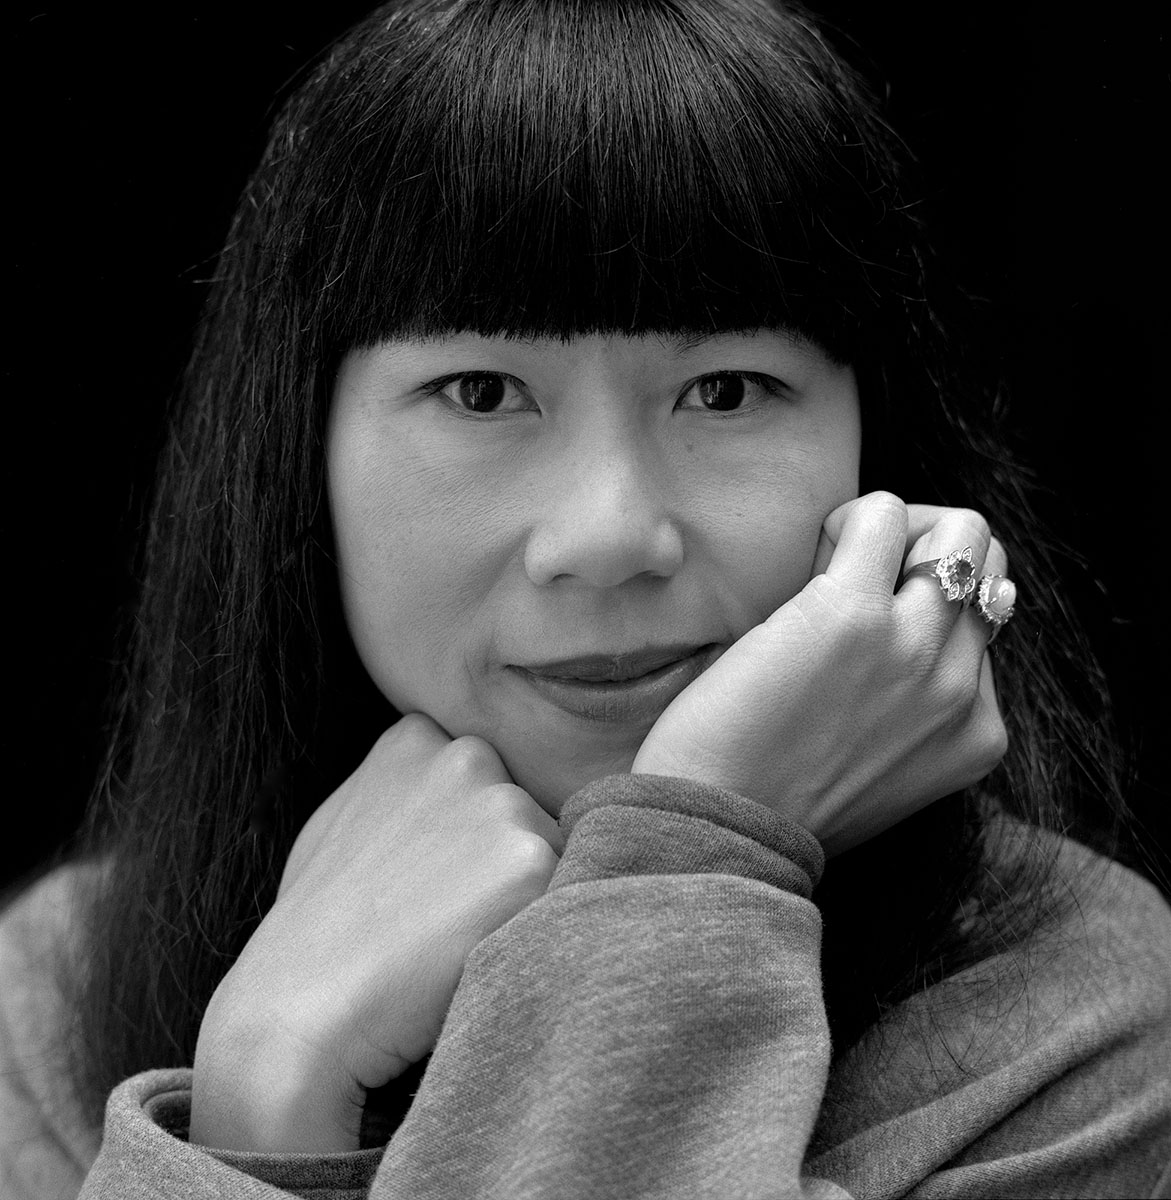 amy tan Amy tan (譚恩美 tán ēnměi) (born 19 february 1952) is a chinese-american  writer and member of the rock bottom remainders, most famous for her novel.